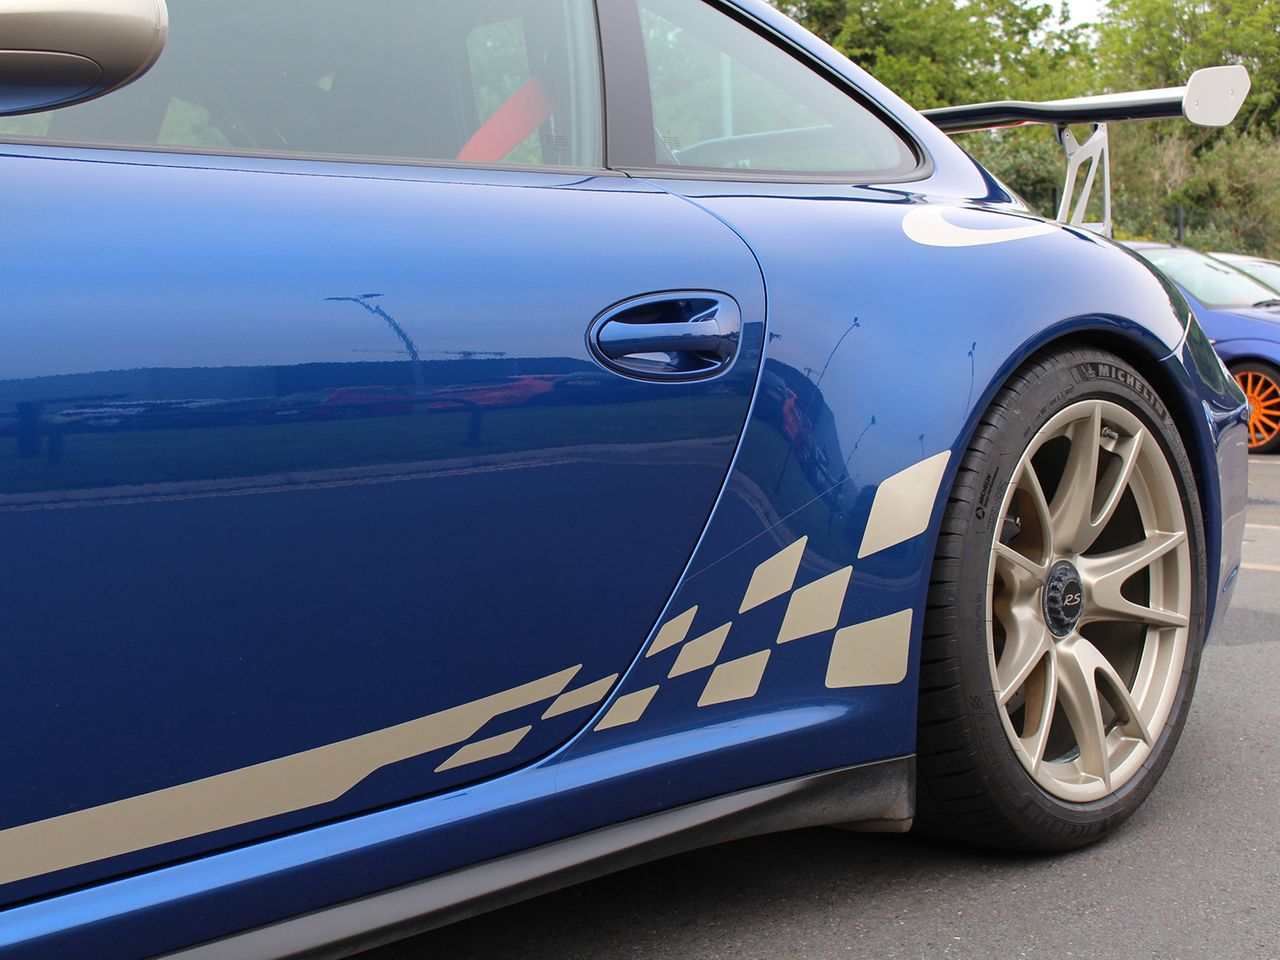 911 GT3 RS (3) image 31